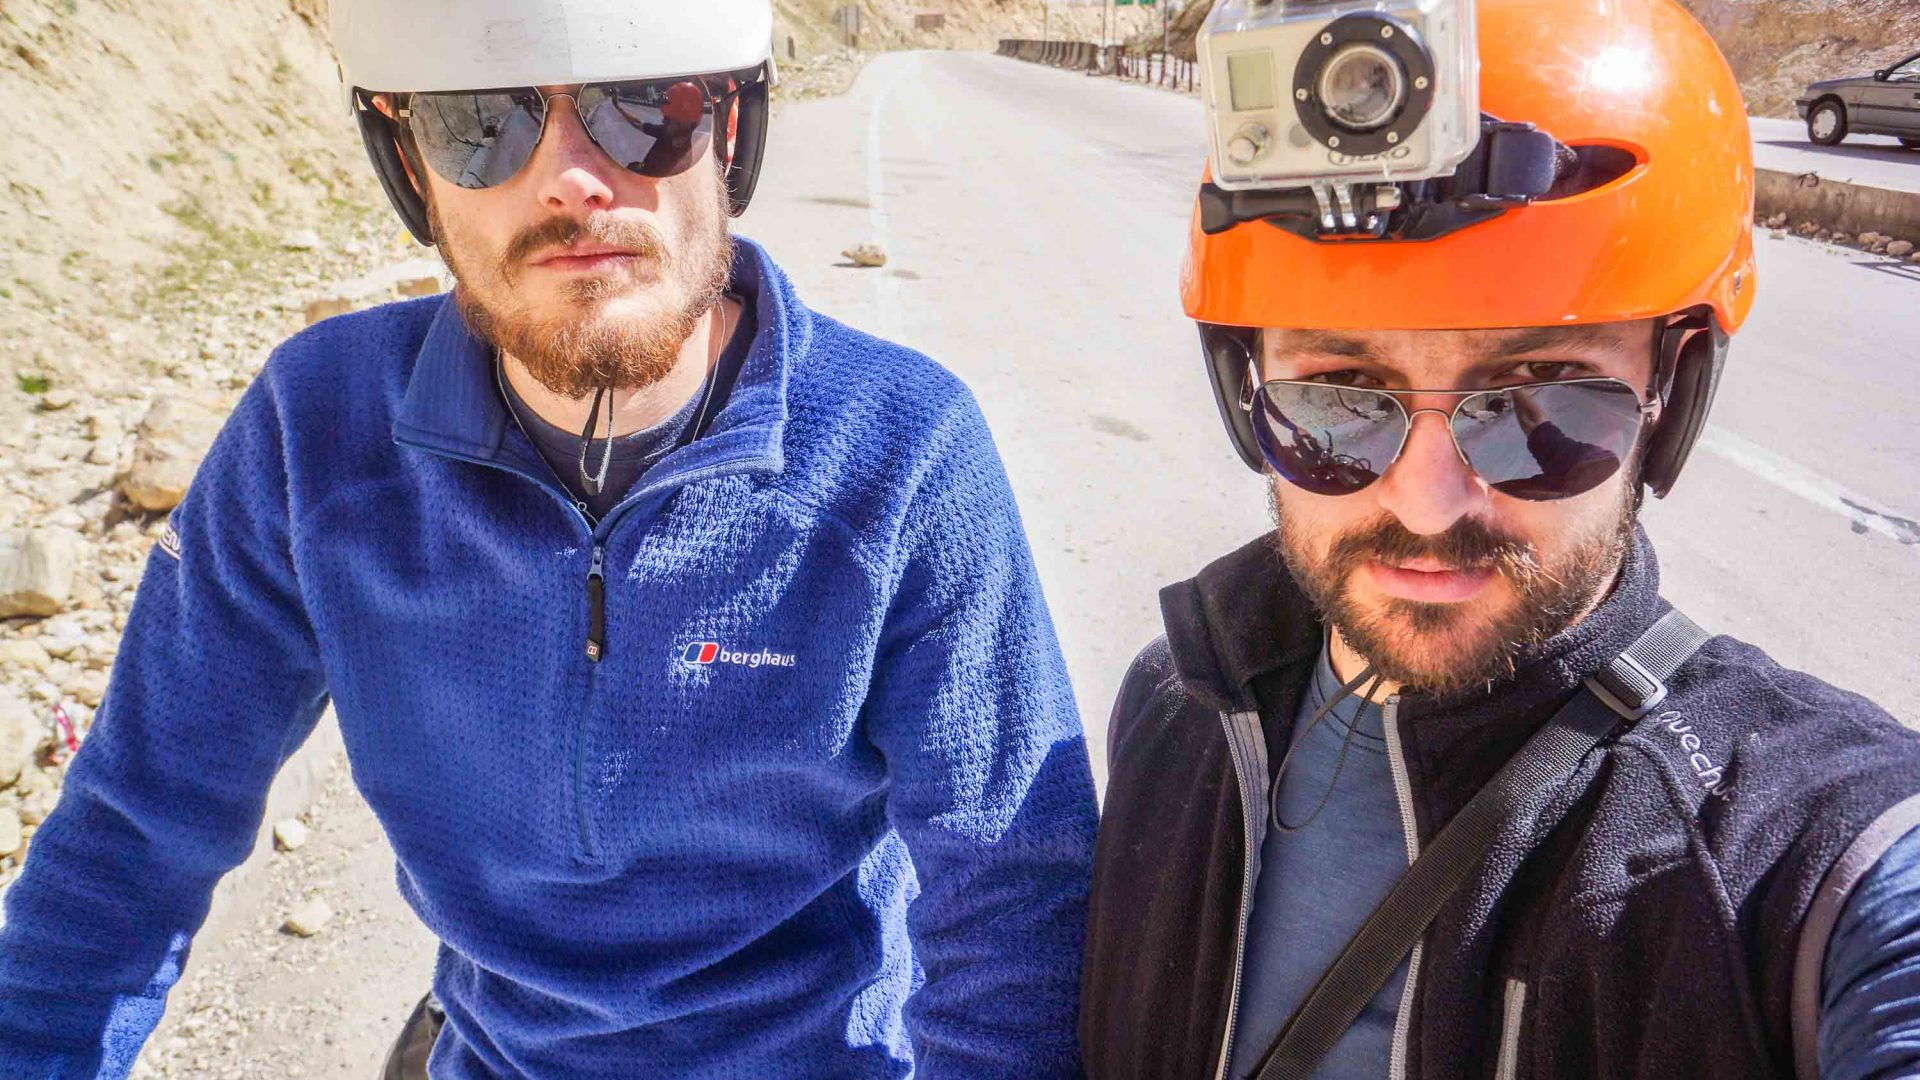 GoPro attached to helmet while cycling in Iran.